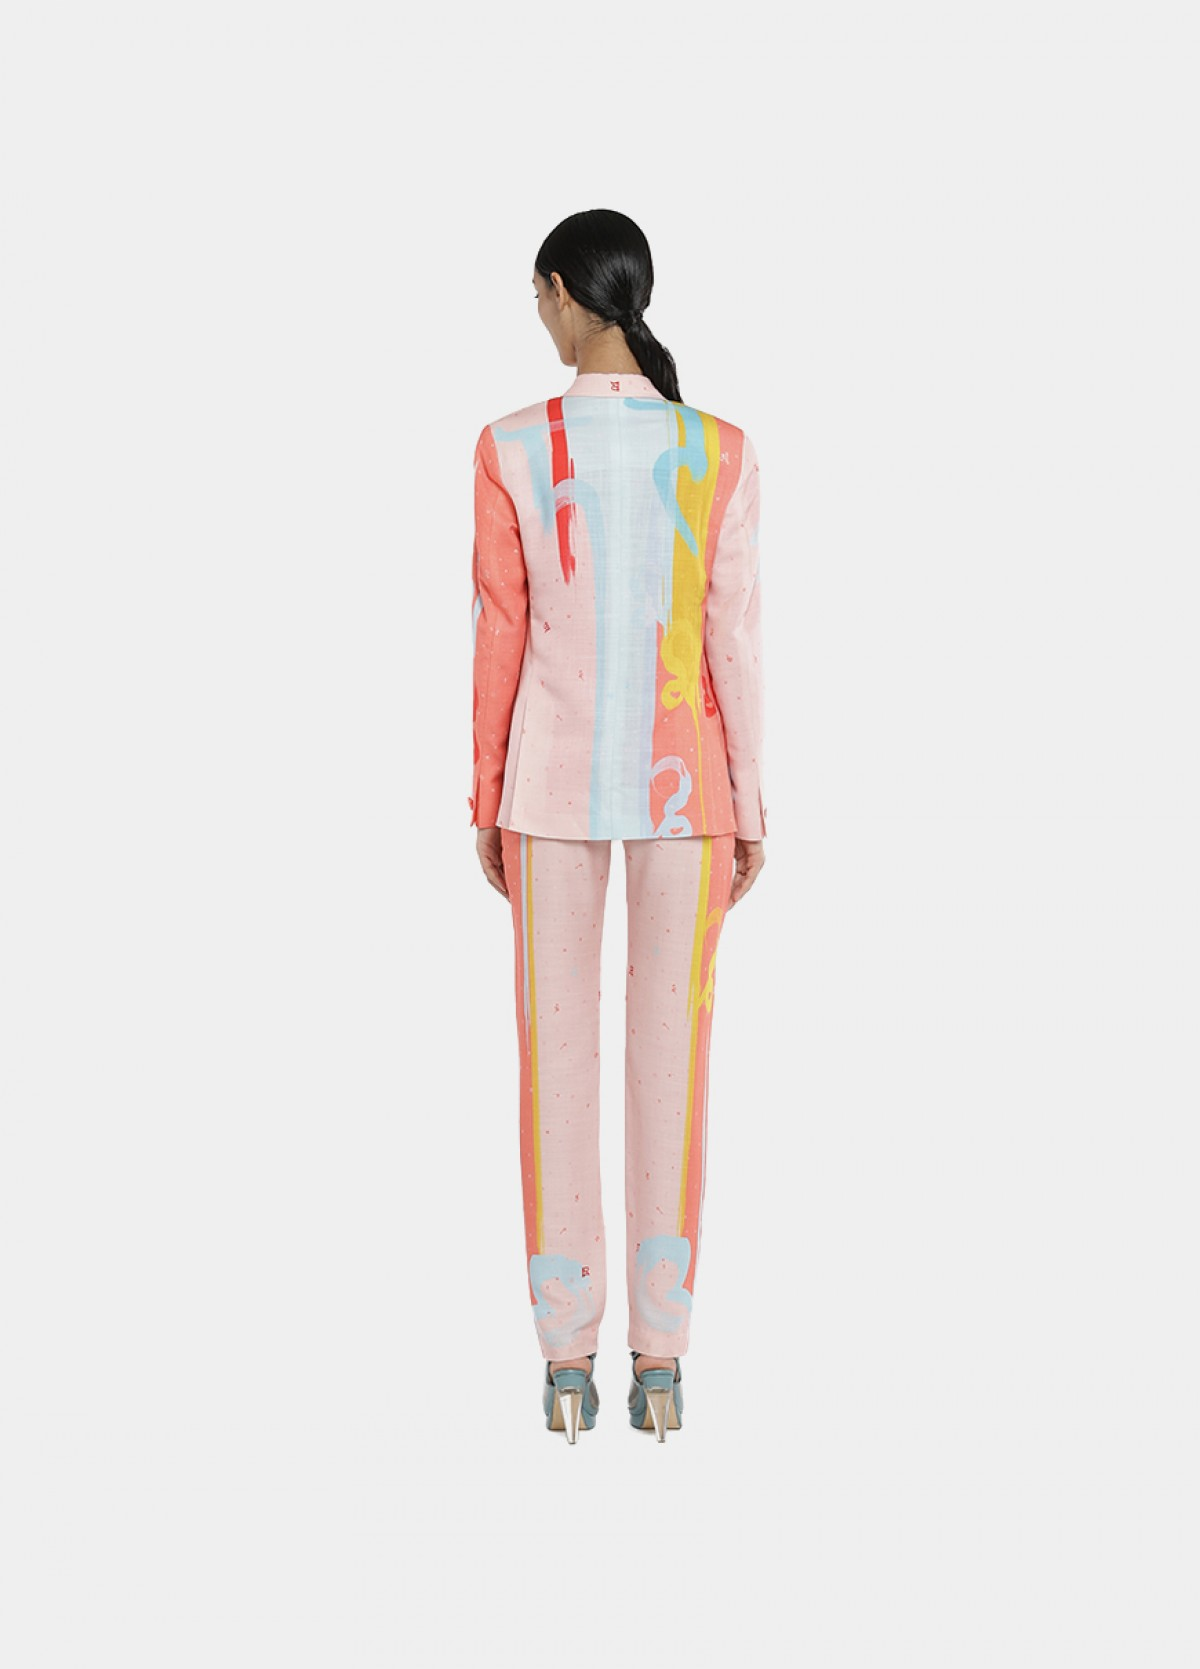 The Carnival Jacket